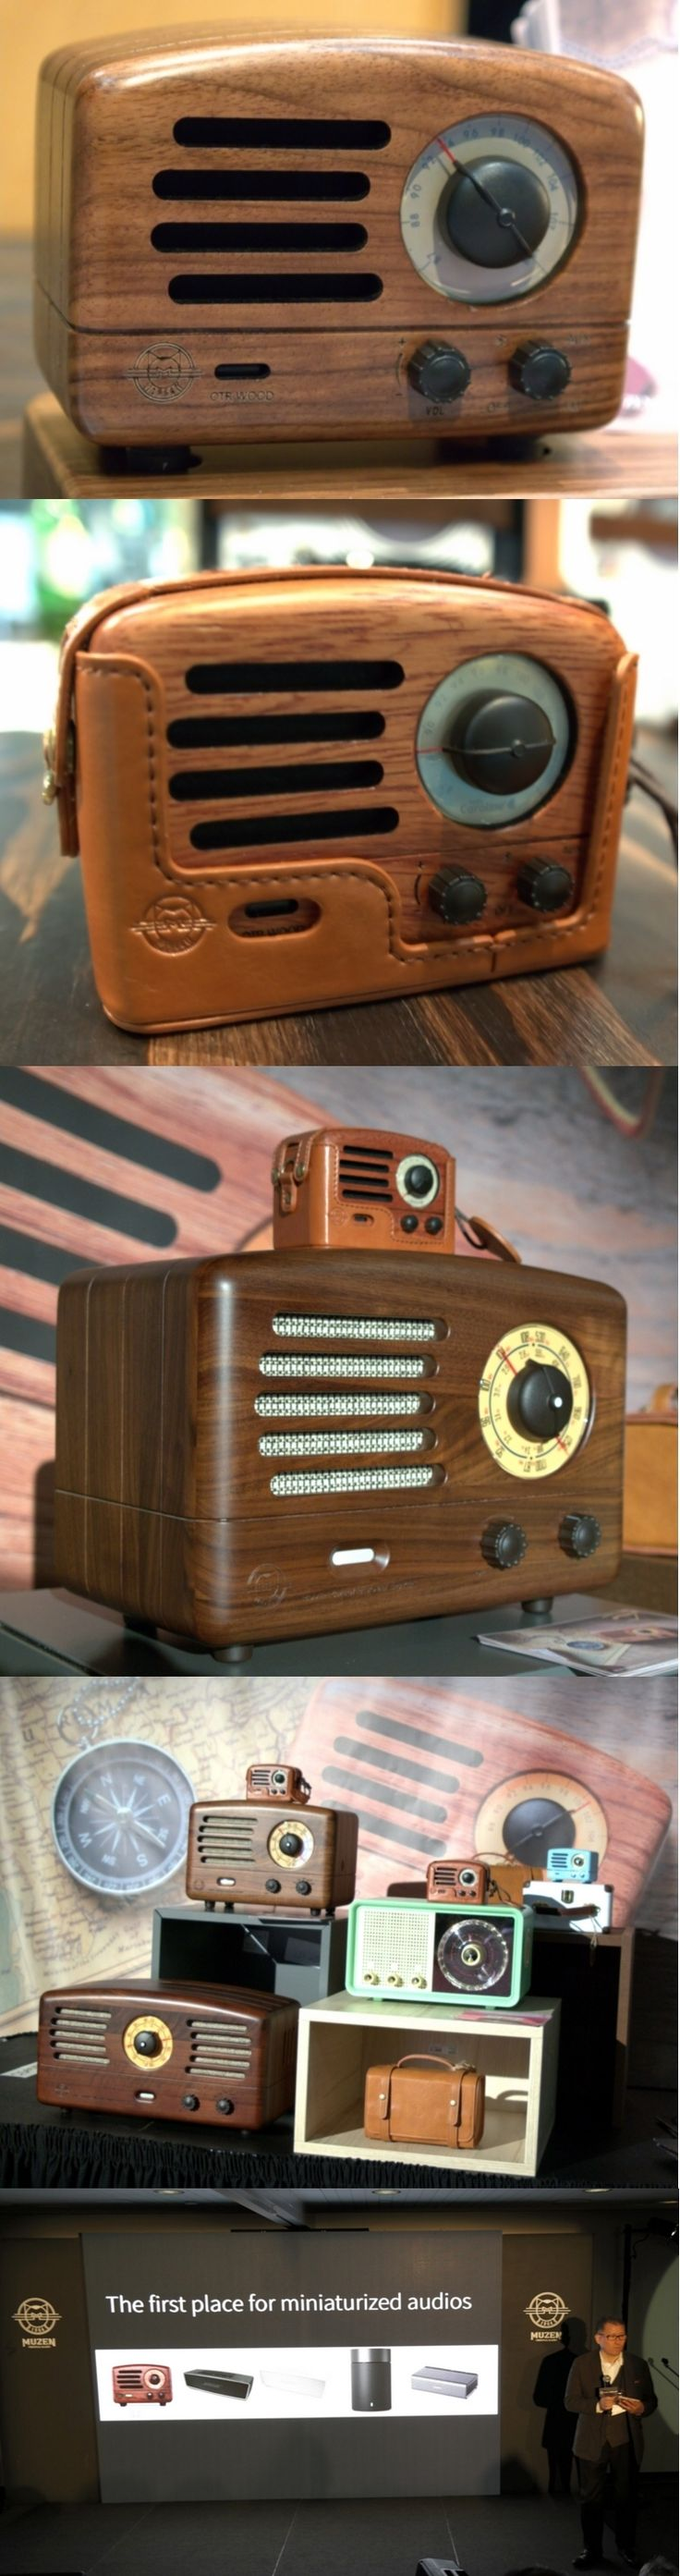 37 Best Wooden Toys Images On Pinterest Wood And Anker Soundcore 2 Bluetooth Speaker A3105011 The Small Muzen Otr Radio Caroline Edition Fm Yields Clear Strong Audio While Its Rosewood Case Backlit Analog Dial